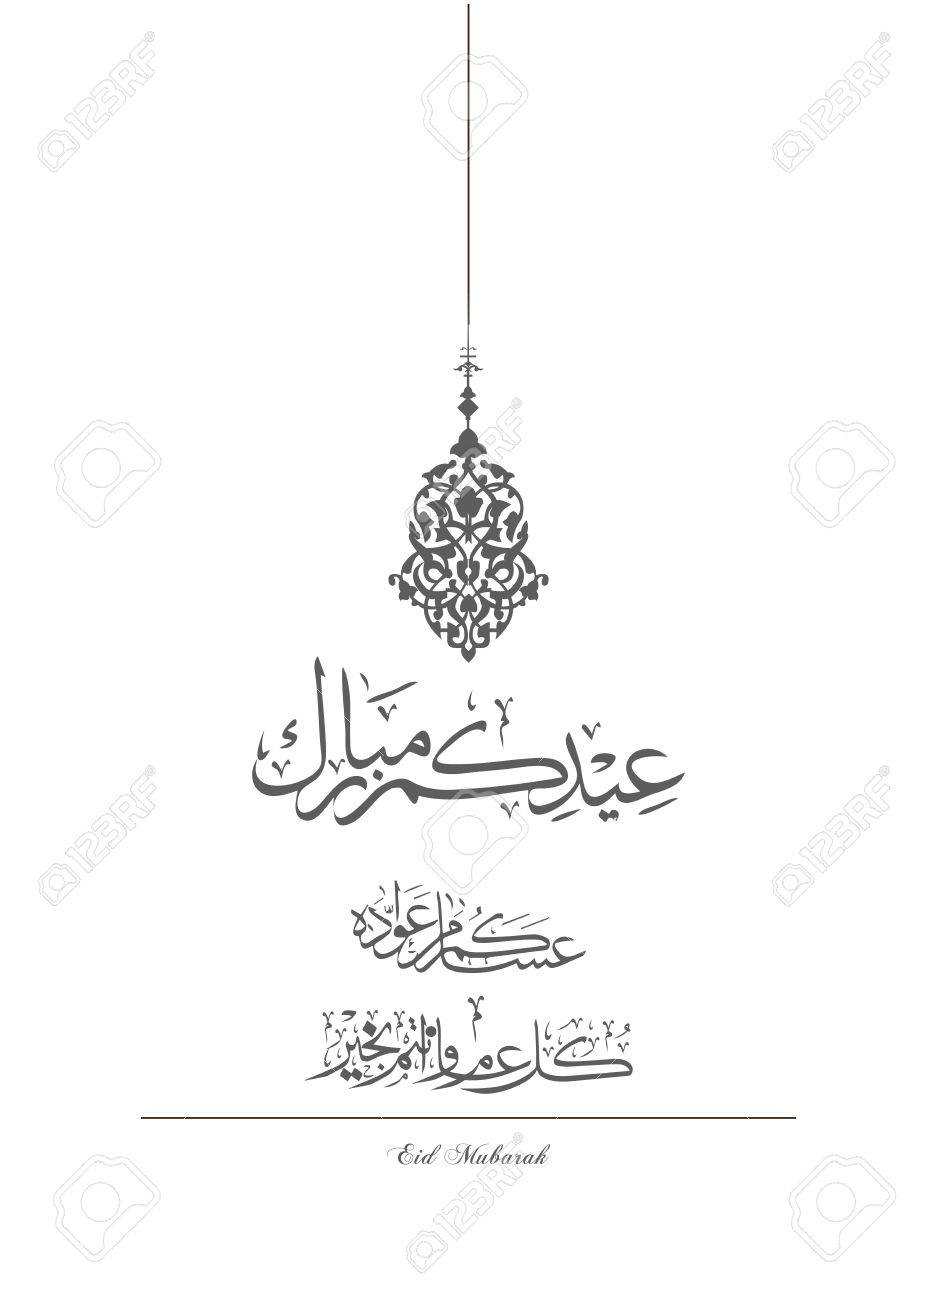 Greetings Card On The Occasion Of Eid Al-Fitr To The Muslims ...